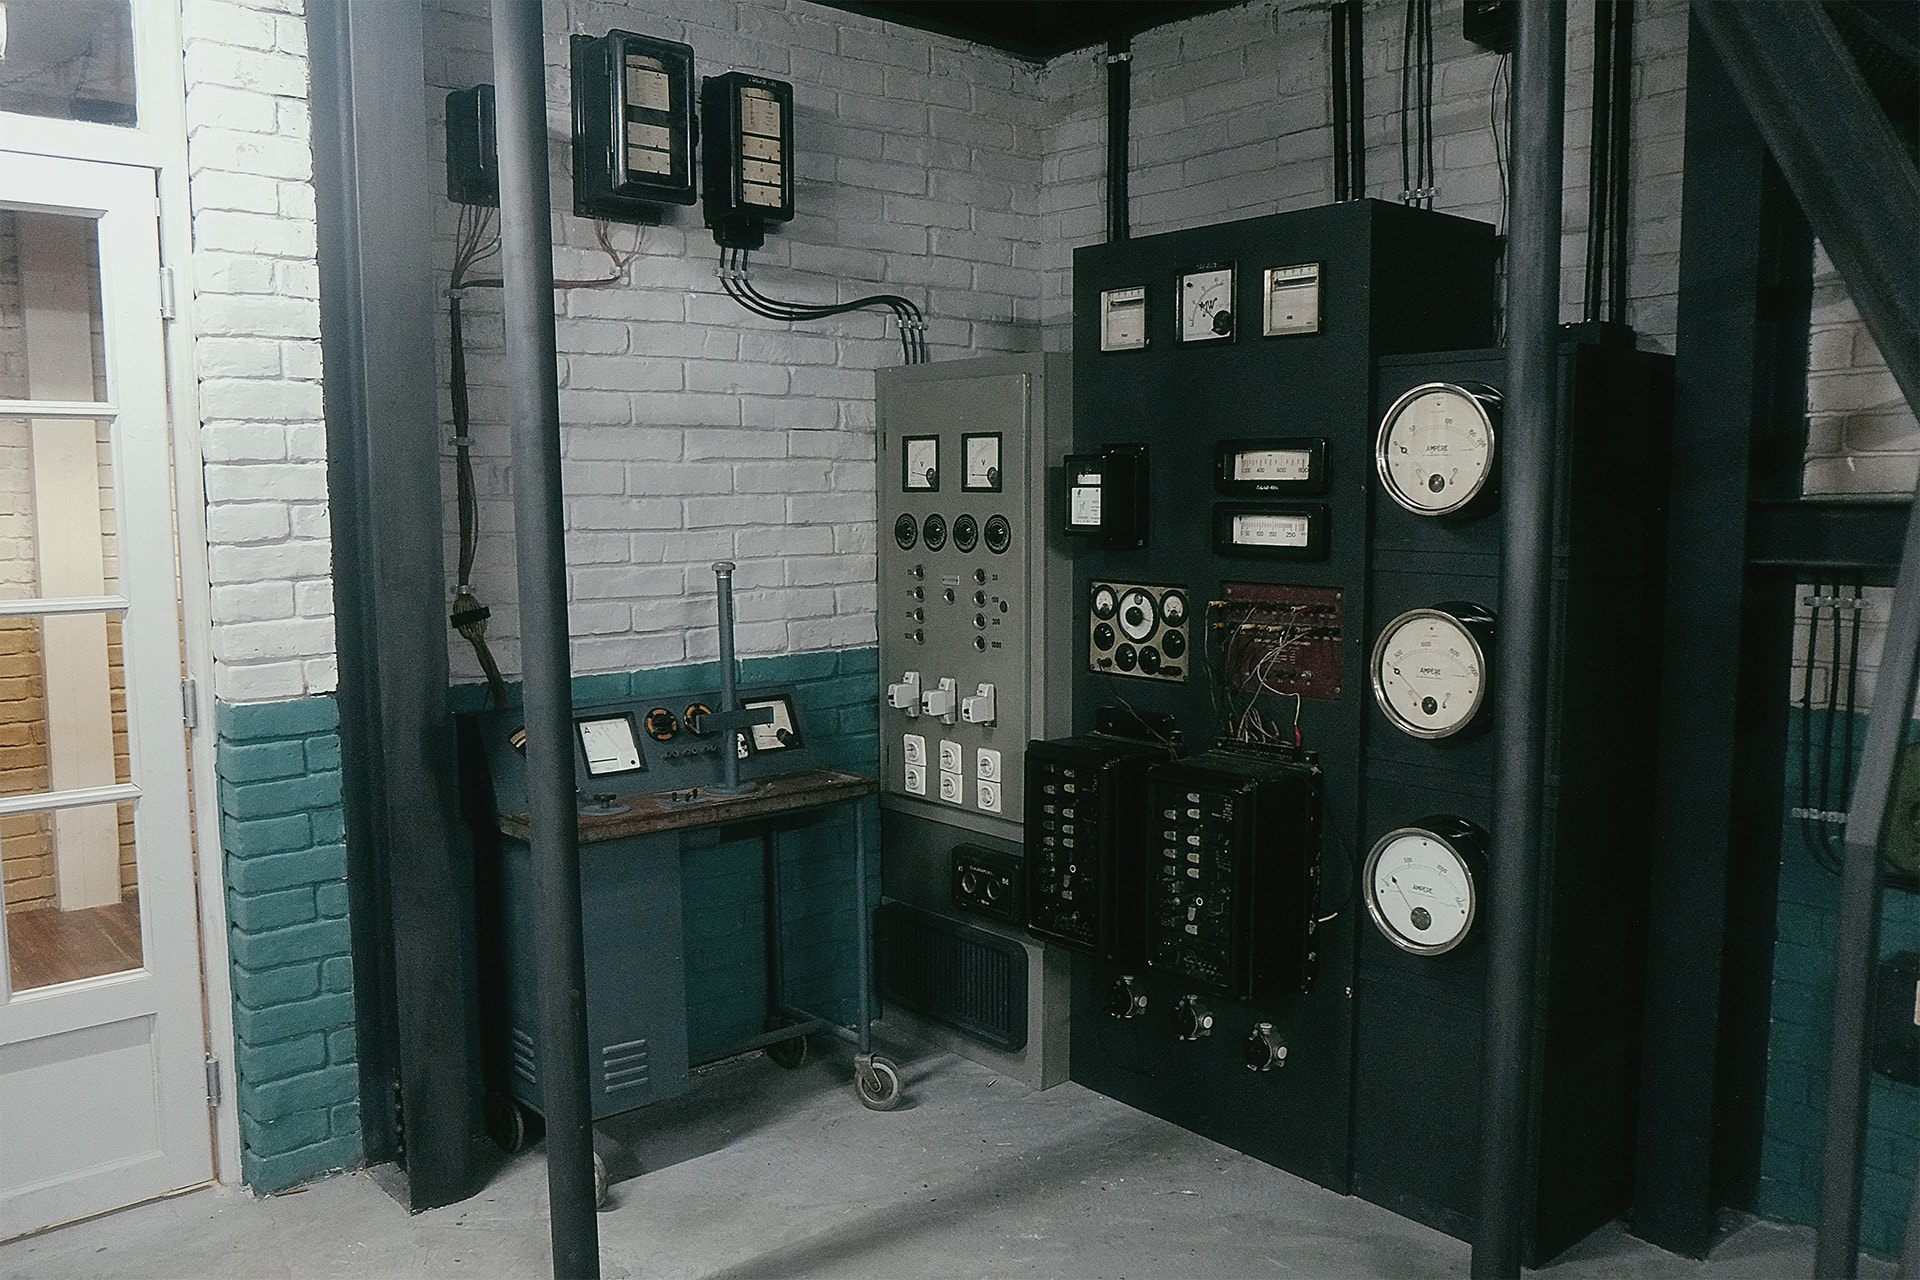 This is the main transmitter for HYDRA. The 10-kilowatt, high frequency, water-cooled transmitter was shipped to the camp from a Philadelphia radio station.